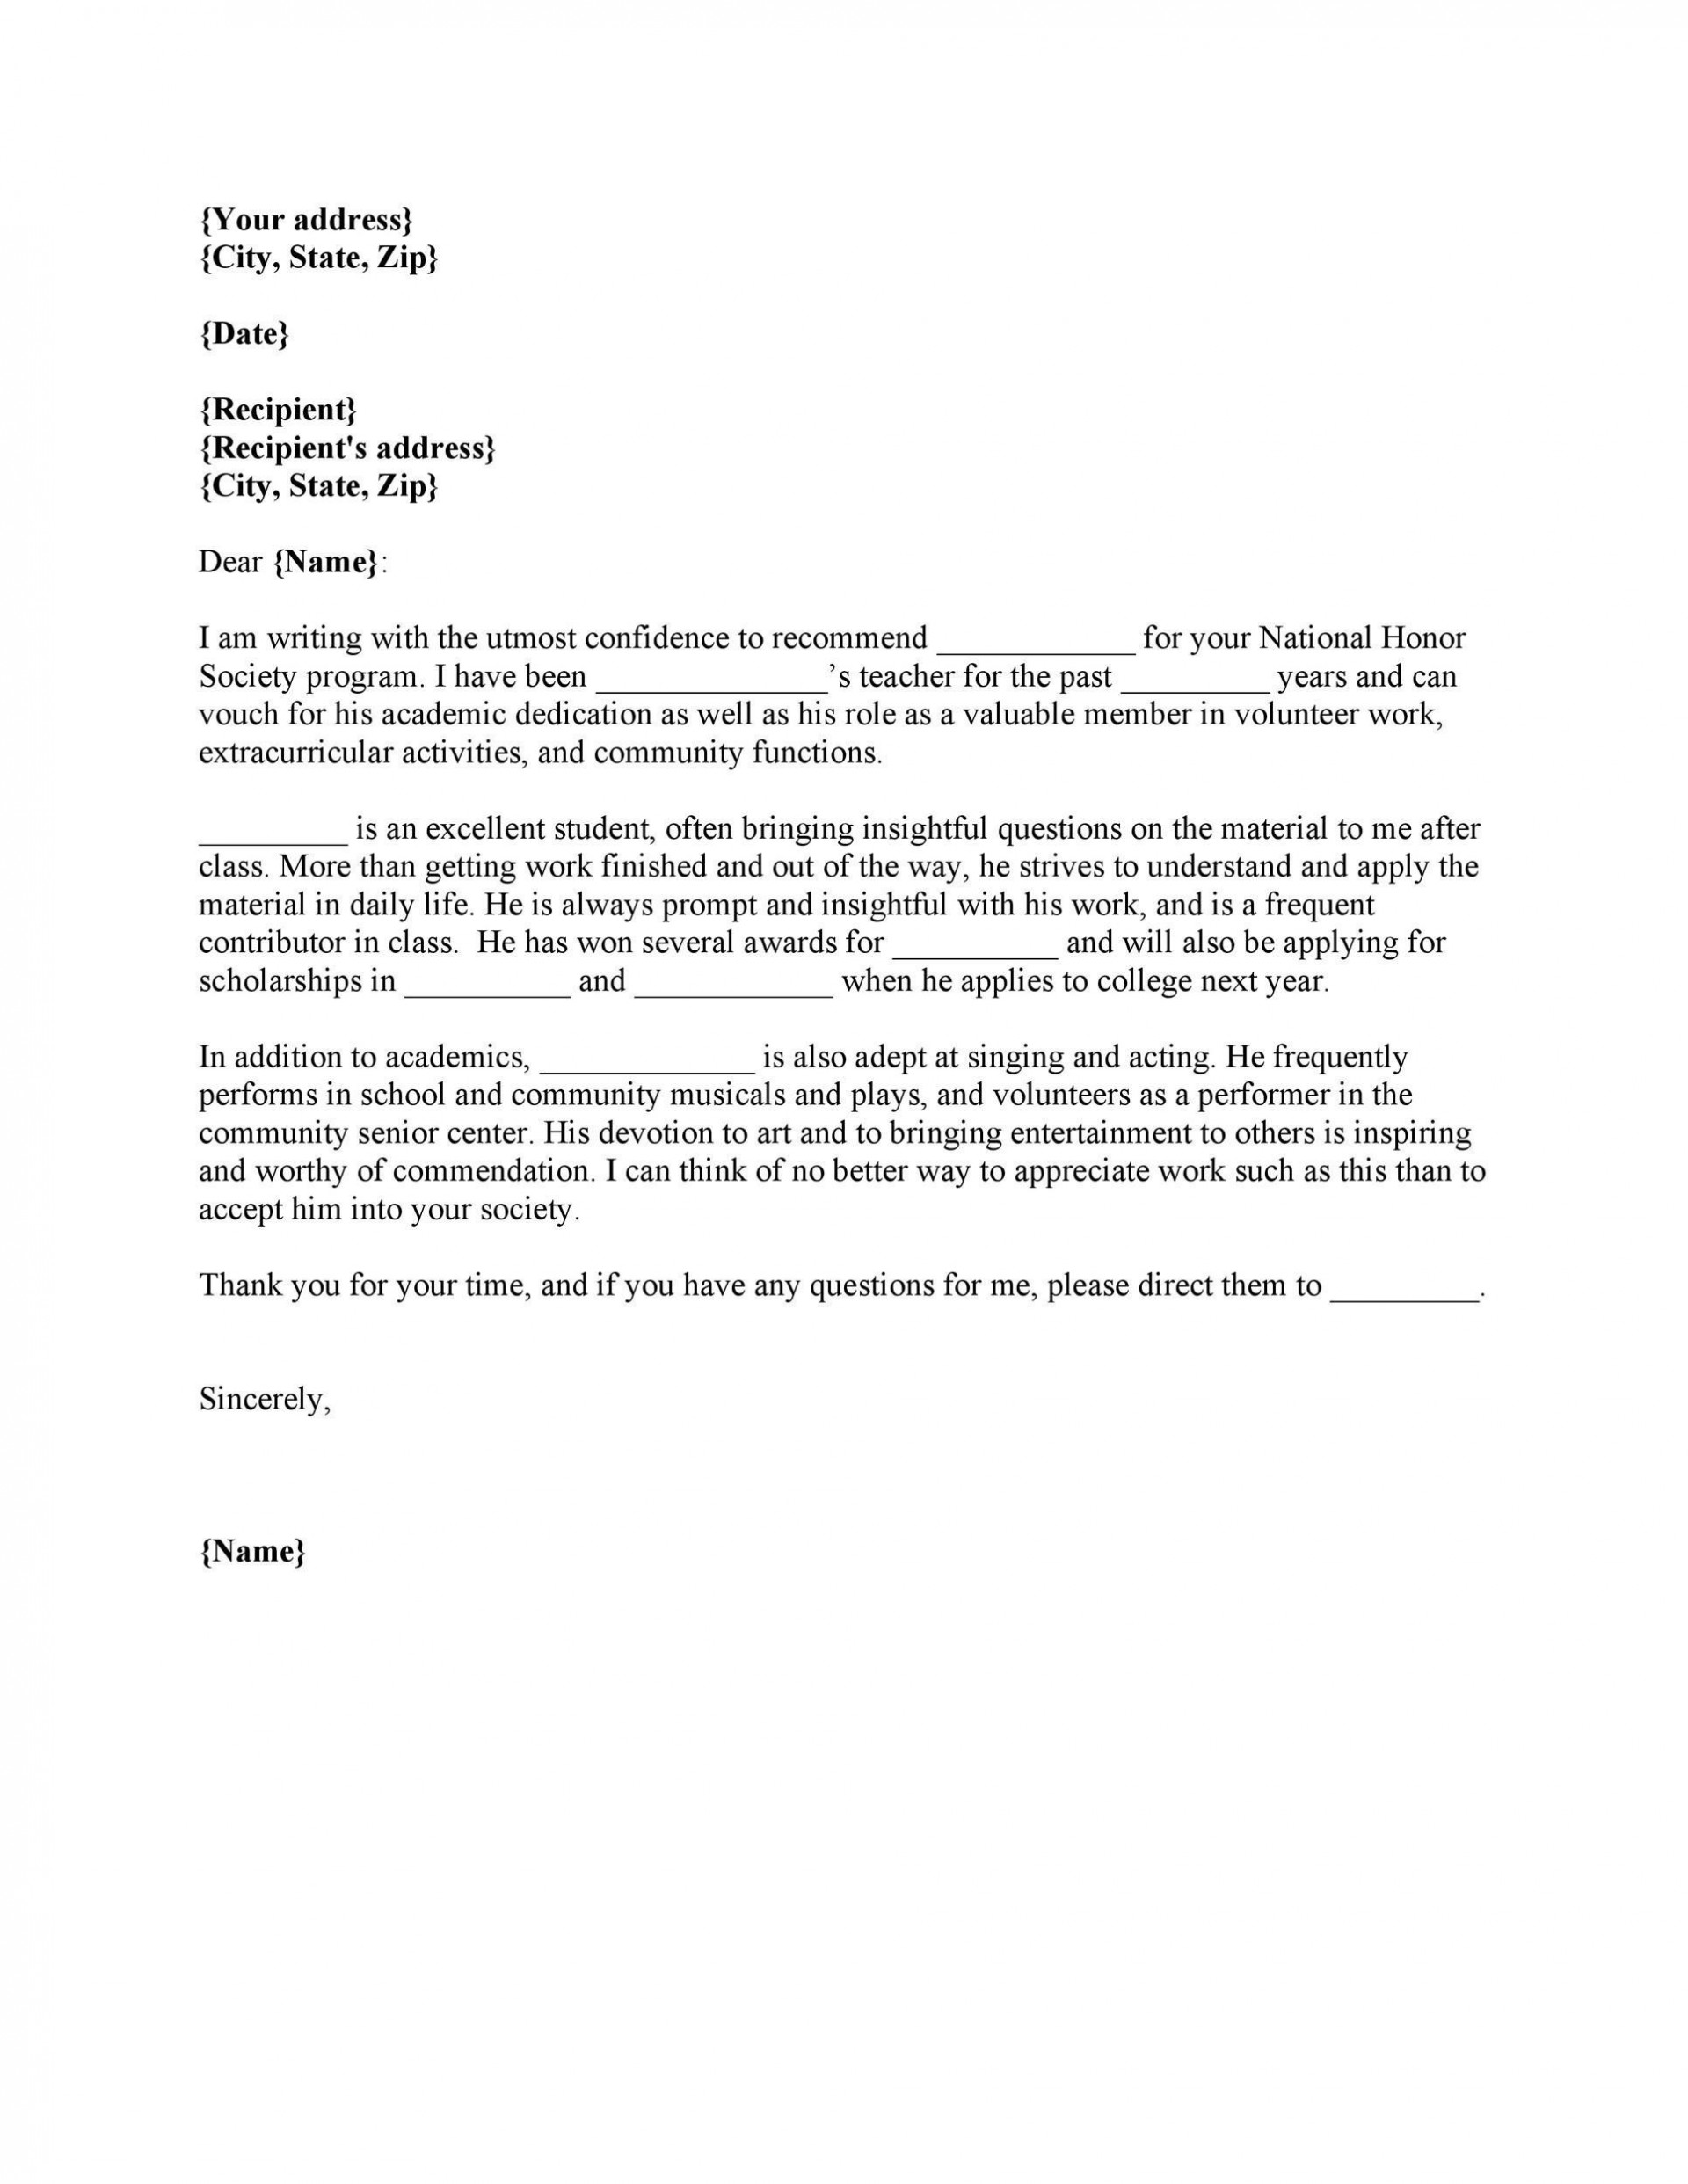 Letter Of Recommendation Template Teacher from www.addictionary.org